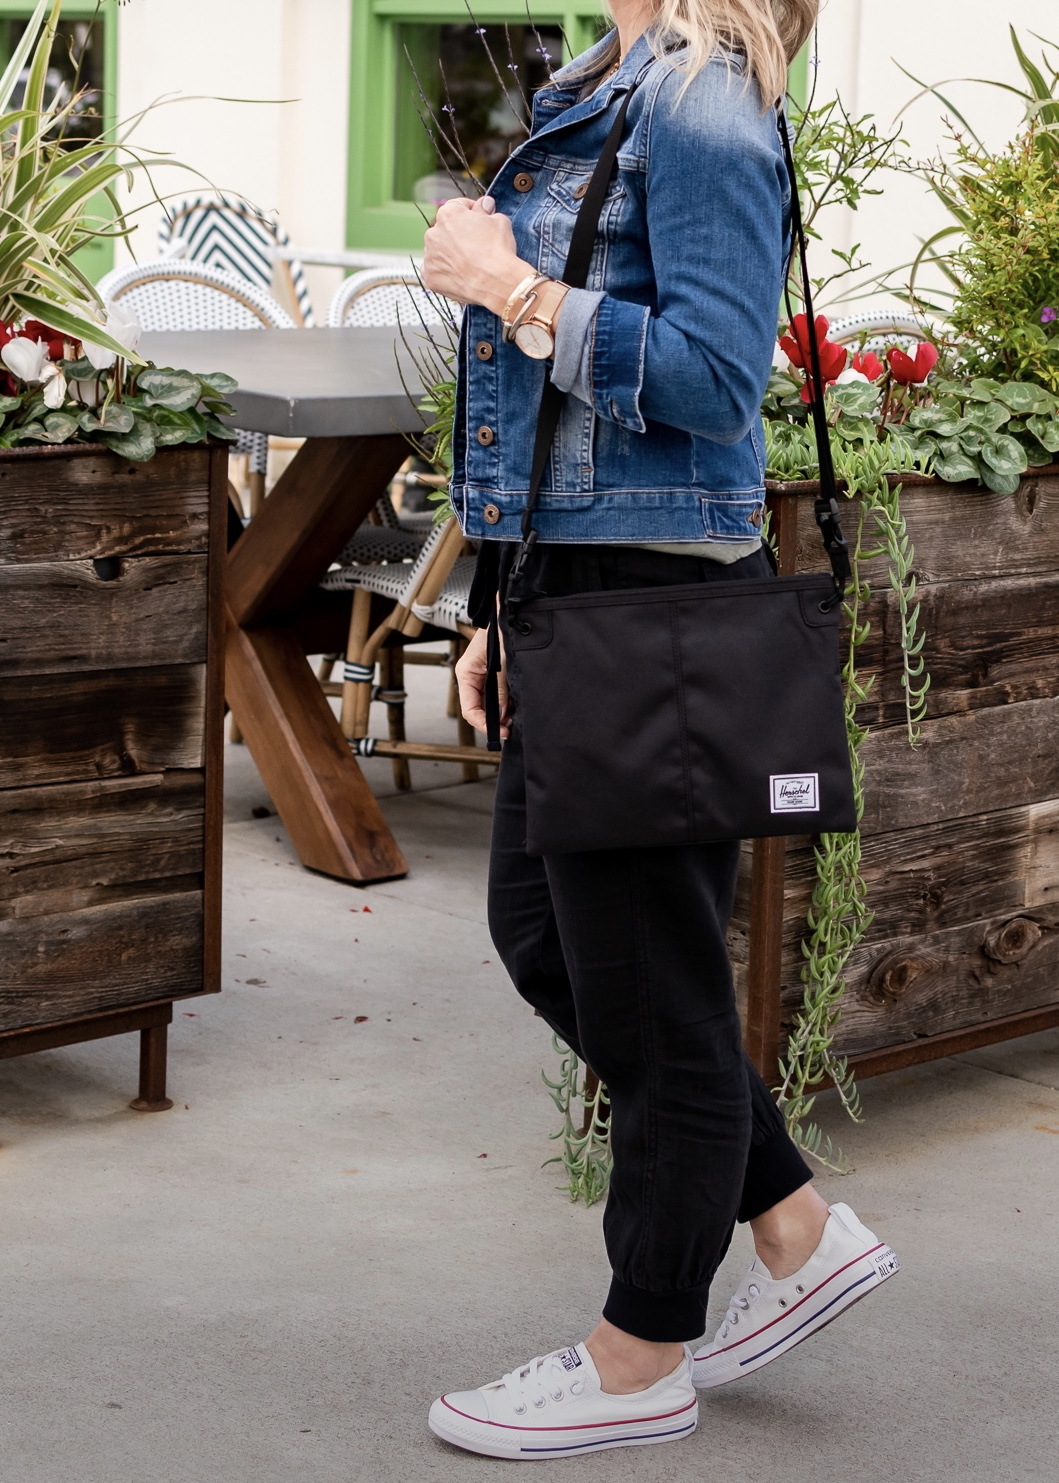 black joggers with tank top jean jacket and converse sneakers